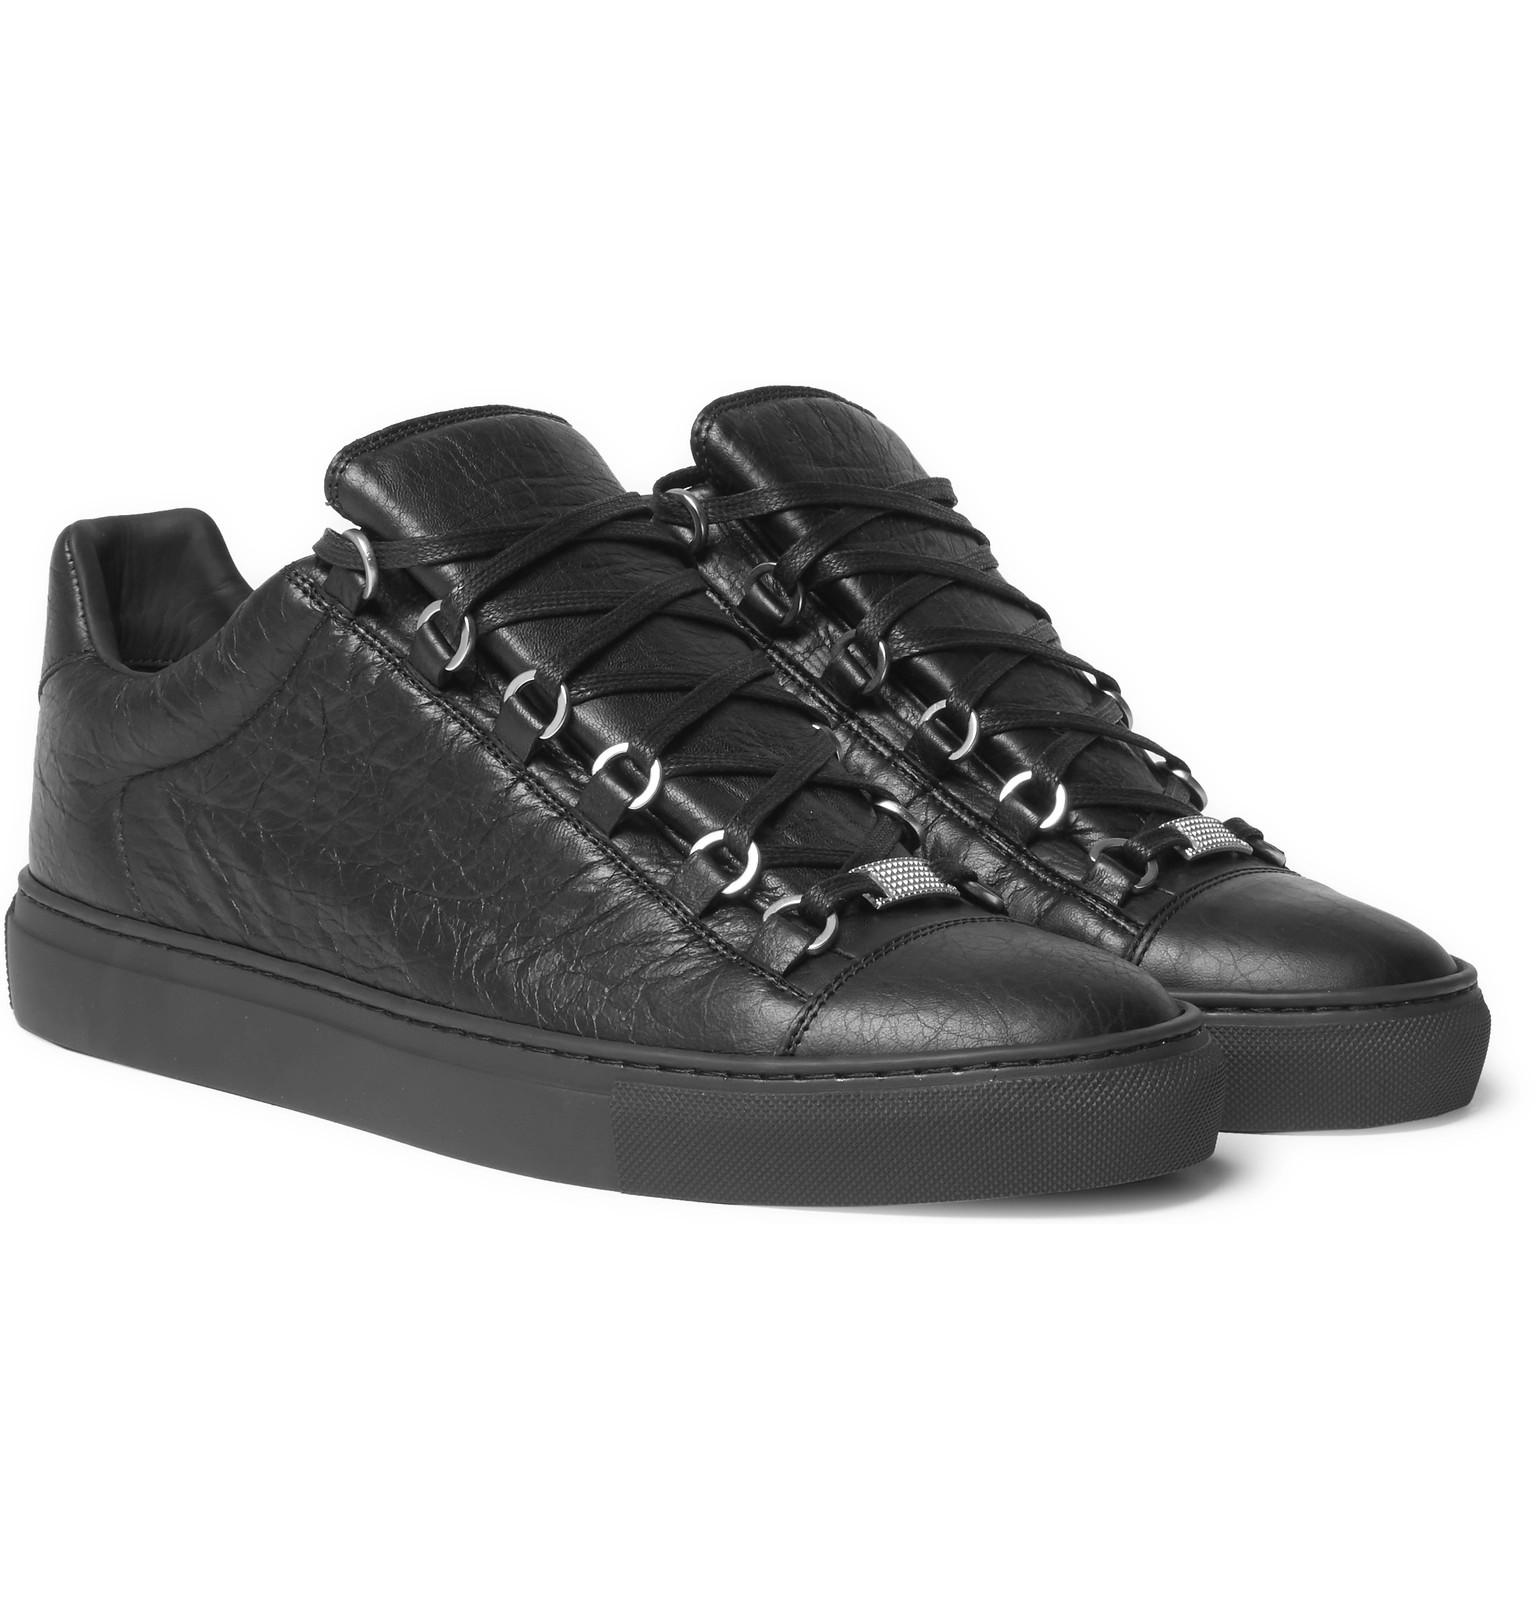 Balenciaga Arena Creased-leather Sneakers in Black for Men - Lyst